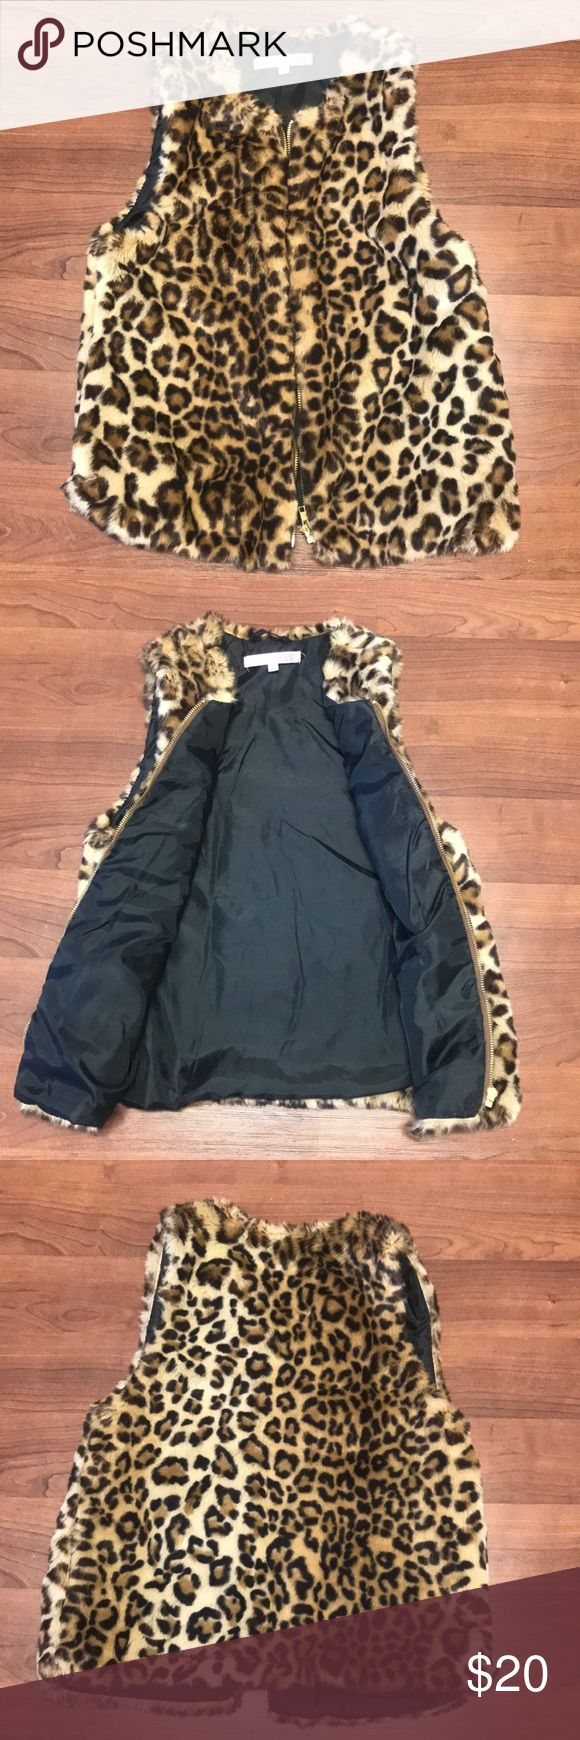 Faux Fur Leopard Vest Size Small- says size 6-7 on tag but fits size small  Has a couple dry spots on fur (shown in photos) but not noticeable at all  Zipper front  Super warm Pockets on side Jackets & Coats Vests